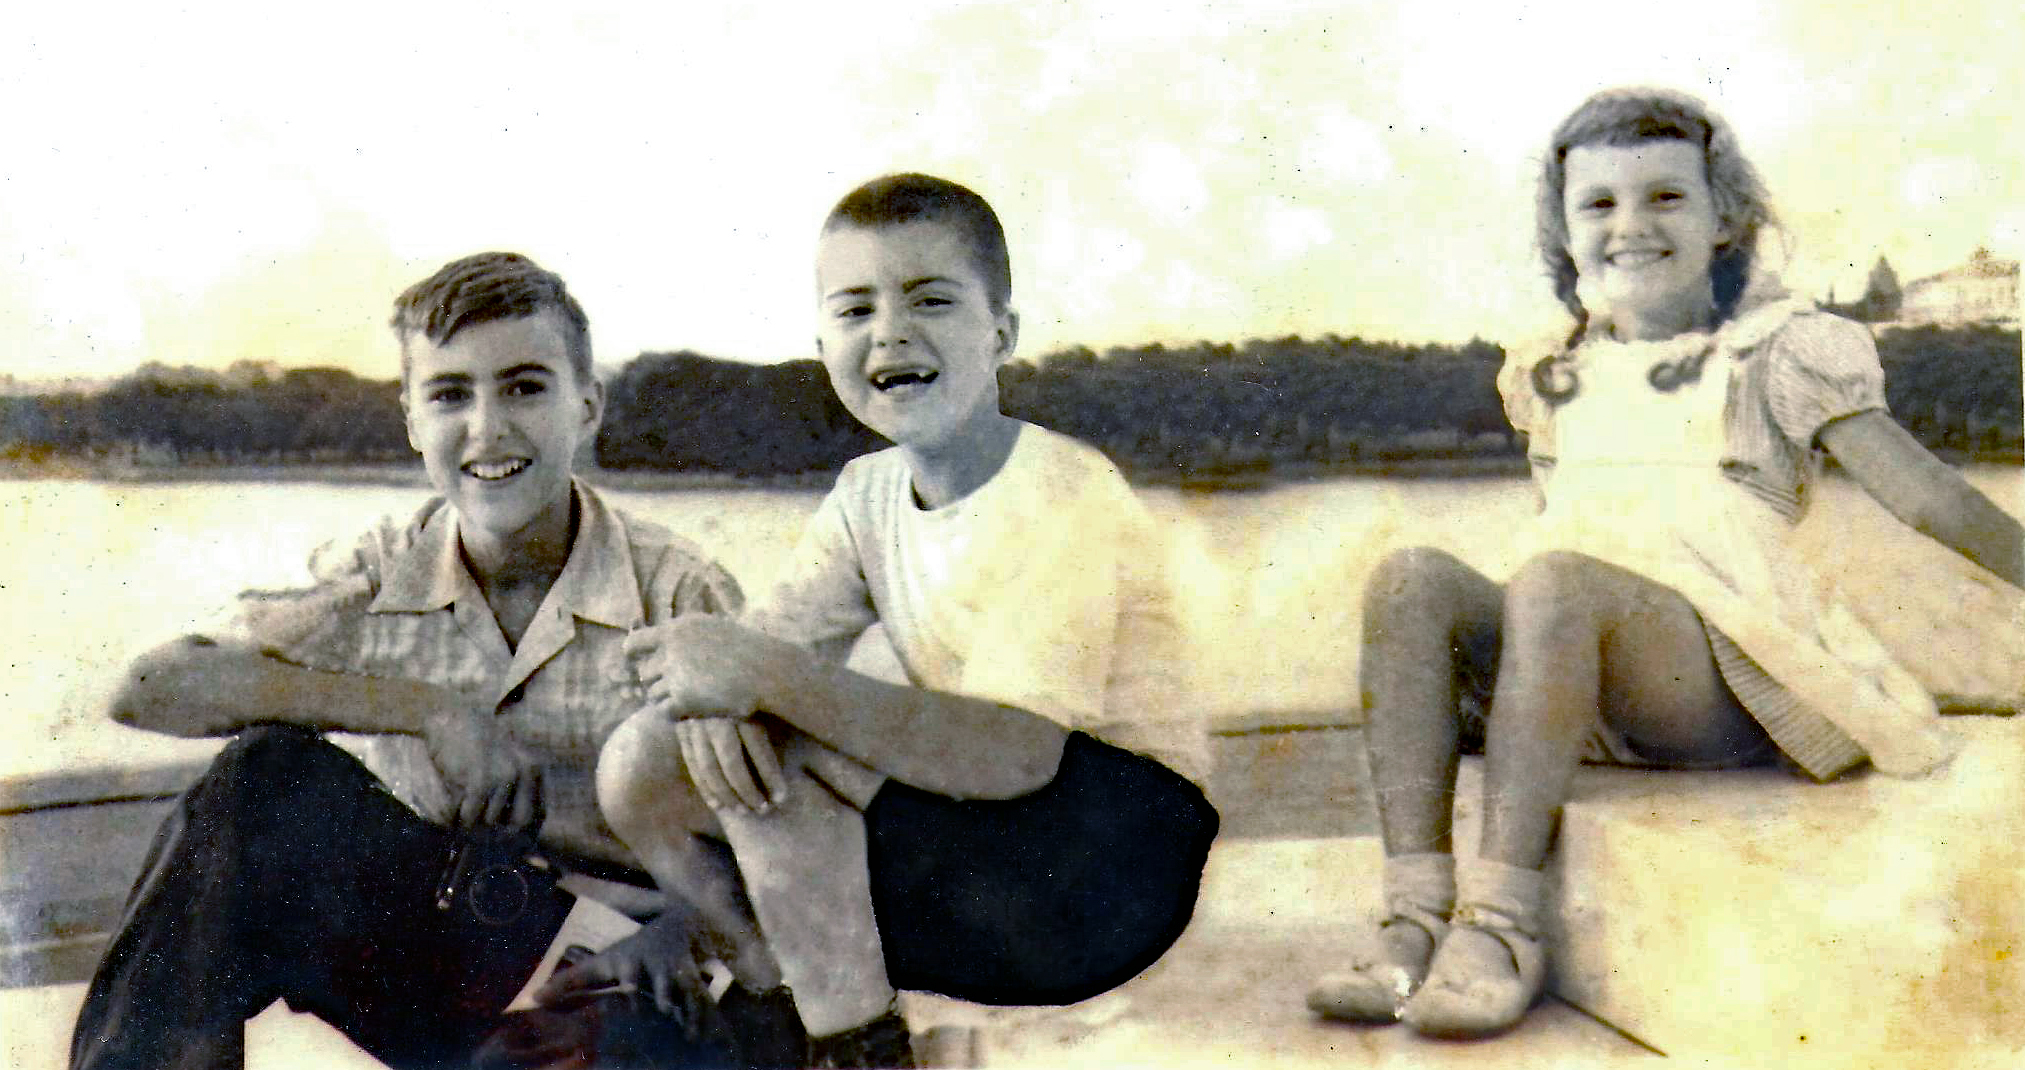 Denis, Bob and Pam, circa 1949